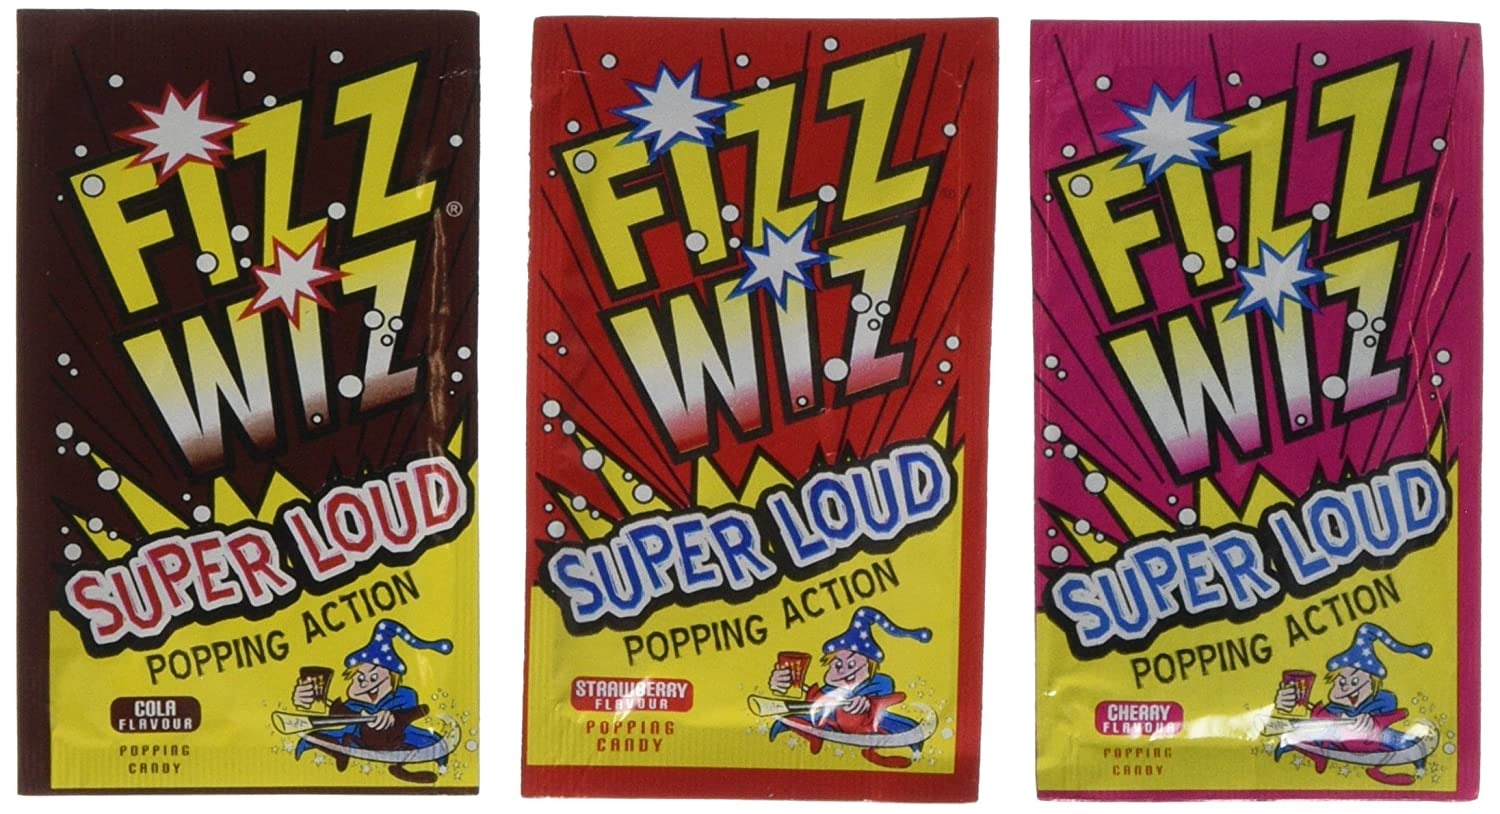 Amazon.com : Fizz Wiz Mix Flavours (space dust) (pack of 6) : Grocery & Gourmet Food